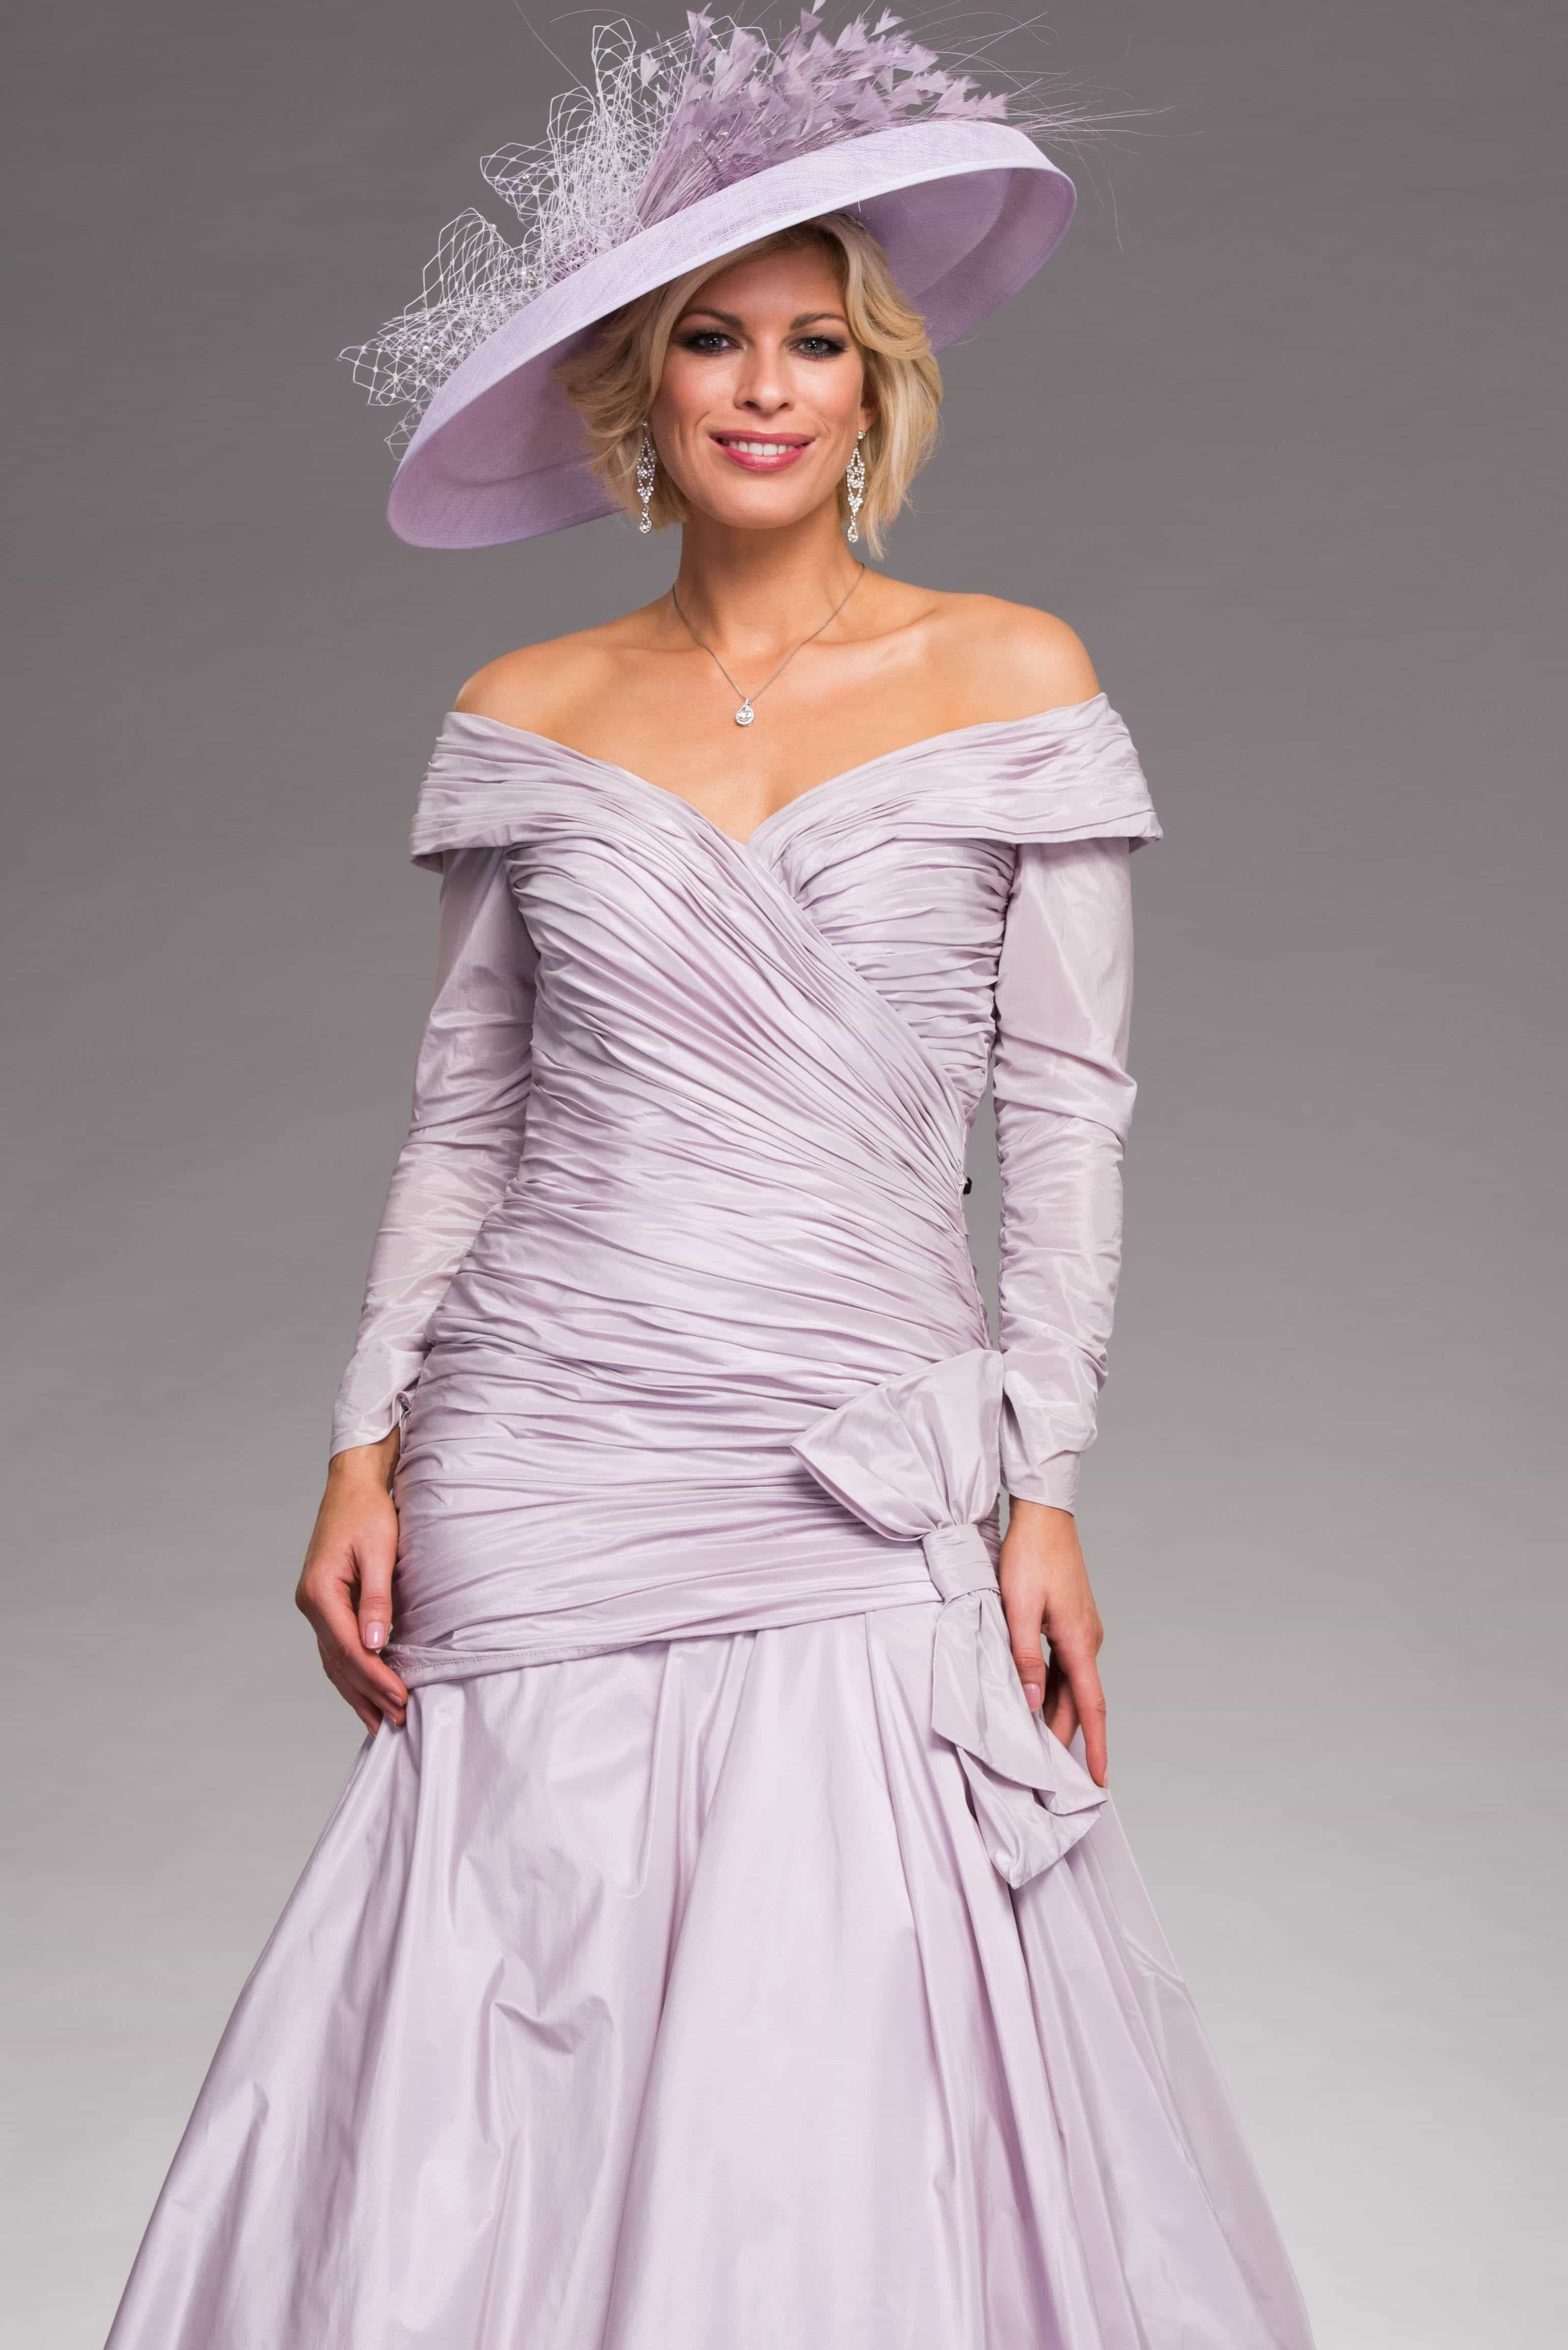 Amy's wedding dress  This full length dress features a ruched bodice that travels through